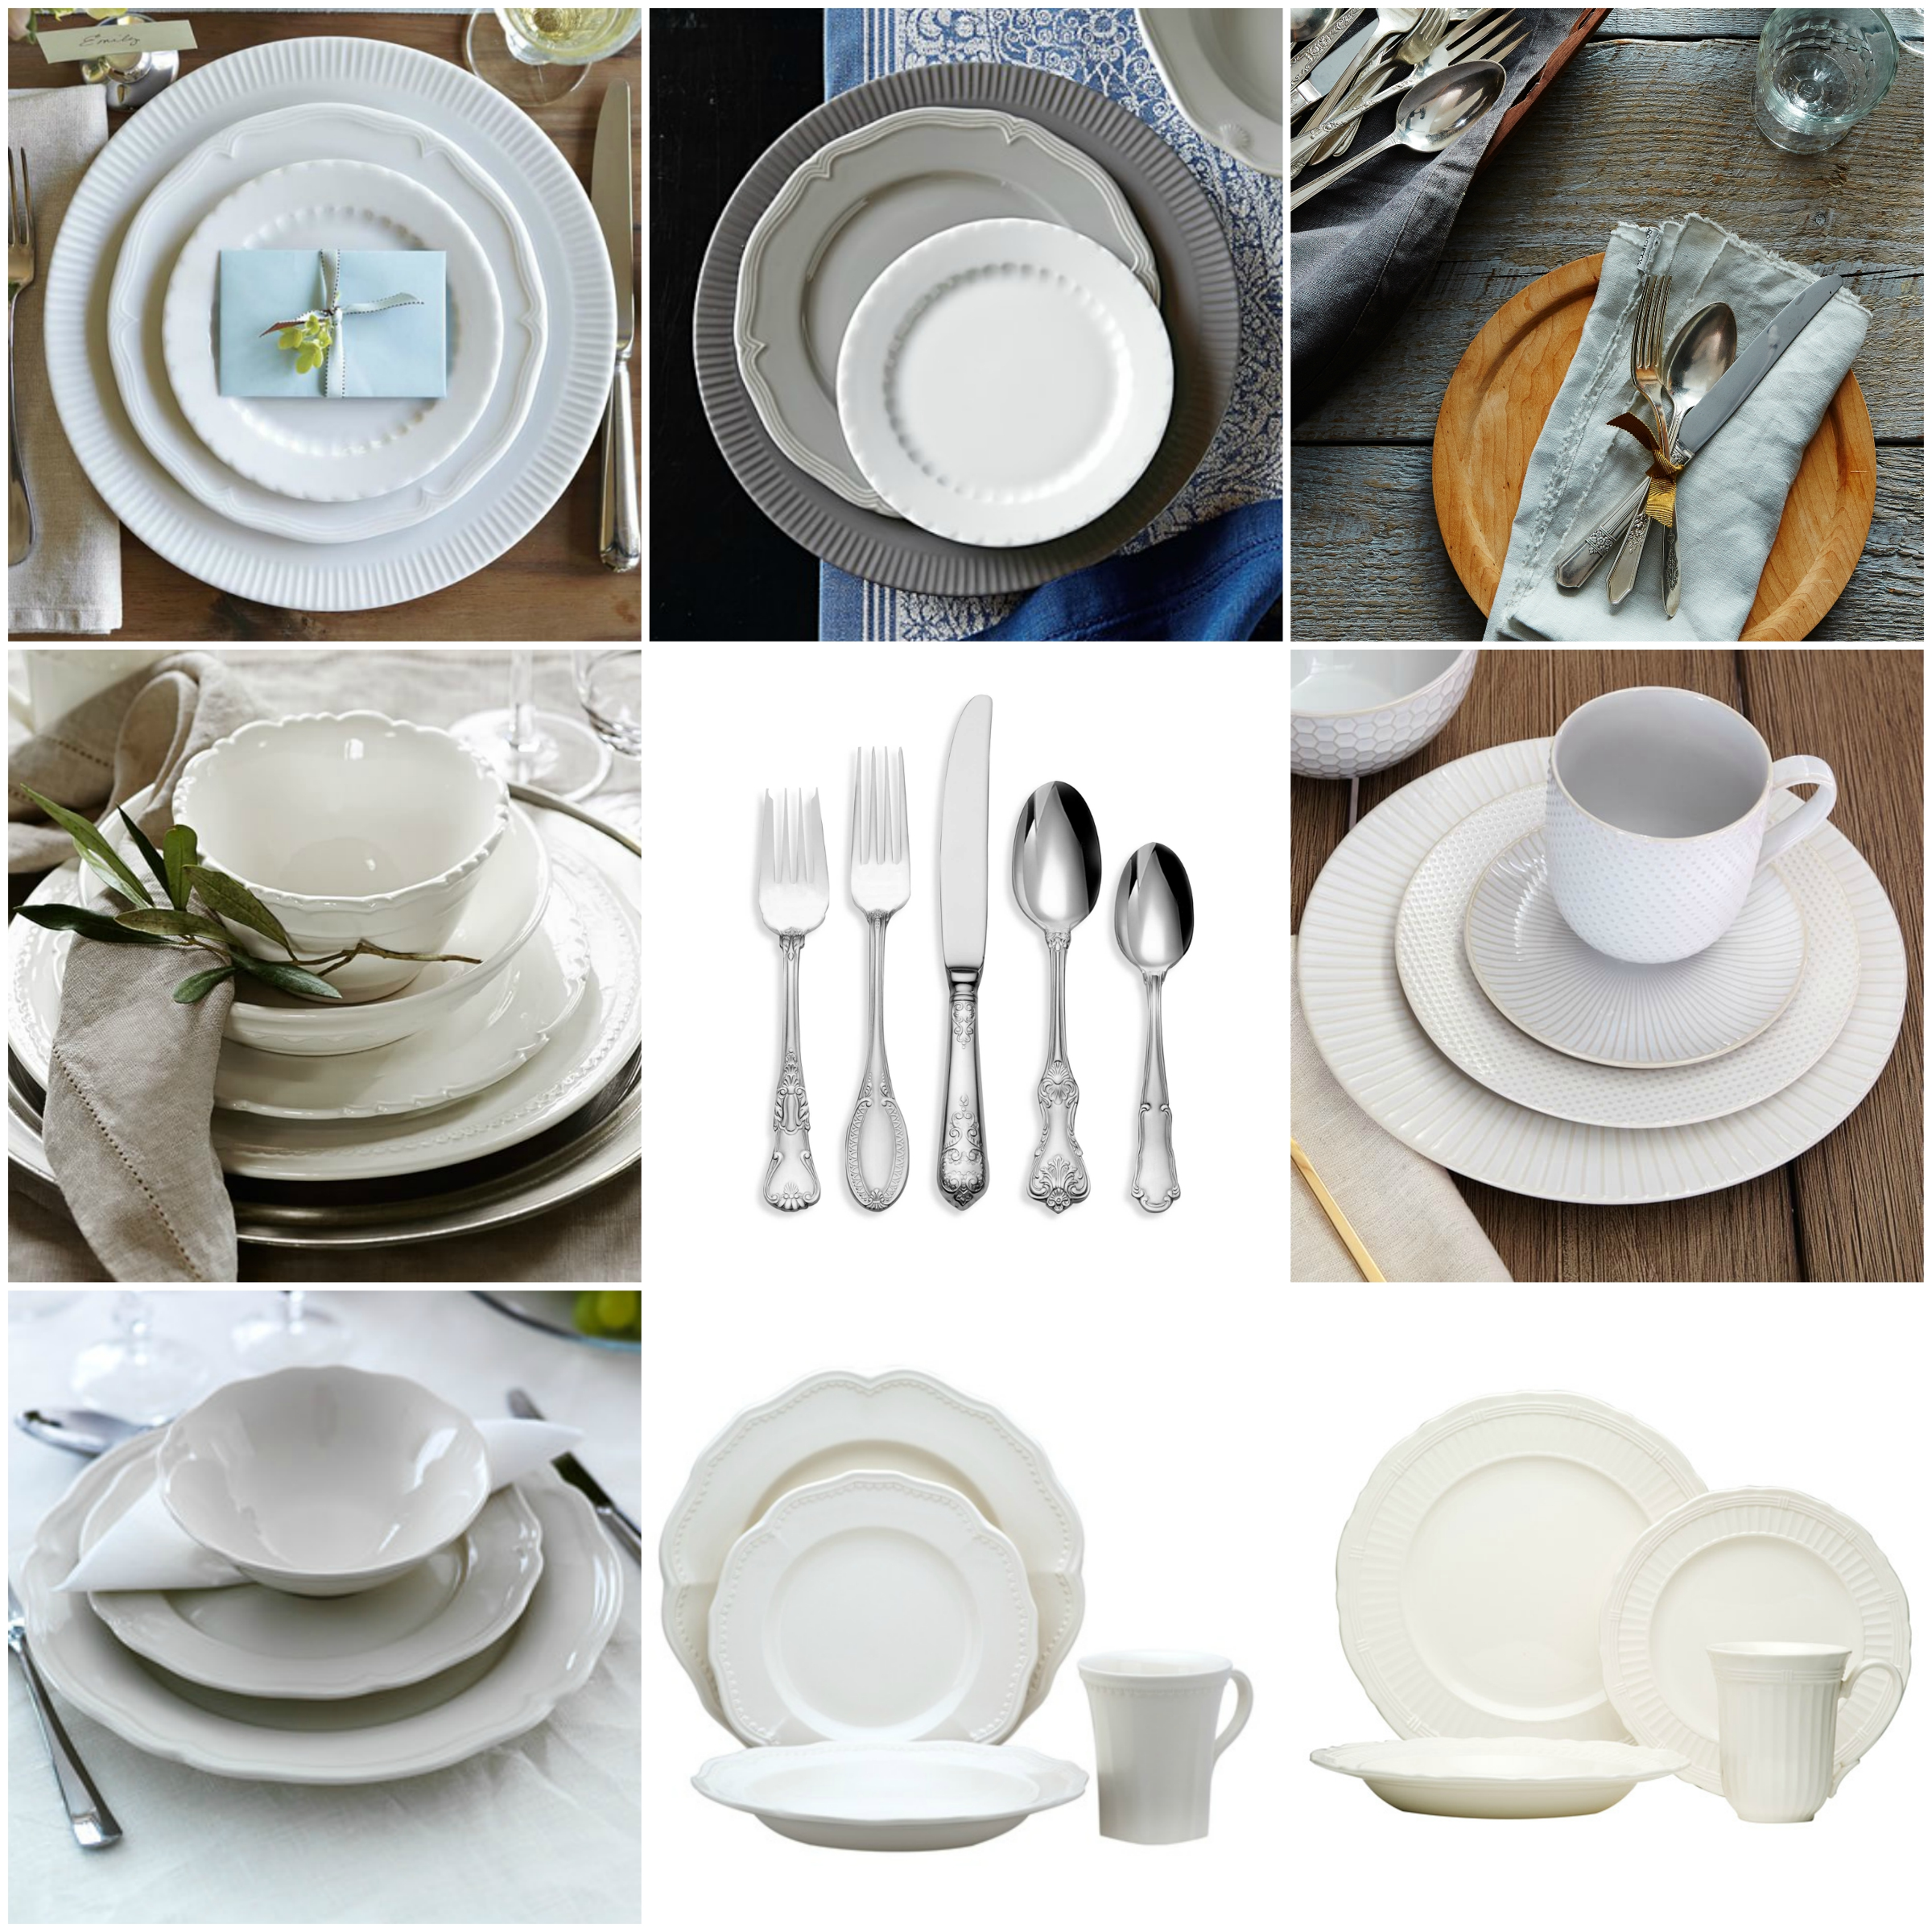 Nosherium Mismatch Dinnerware & Mix Match Mismatched u2013 Nosherium